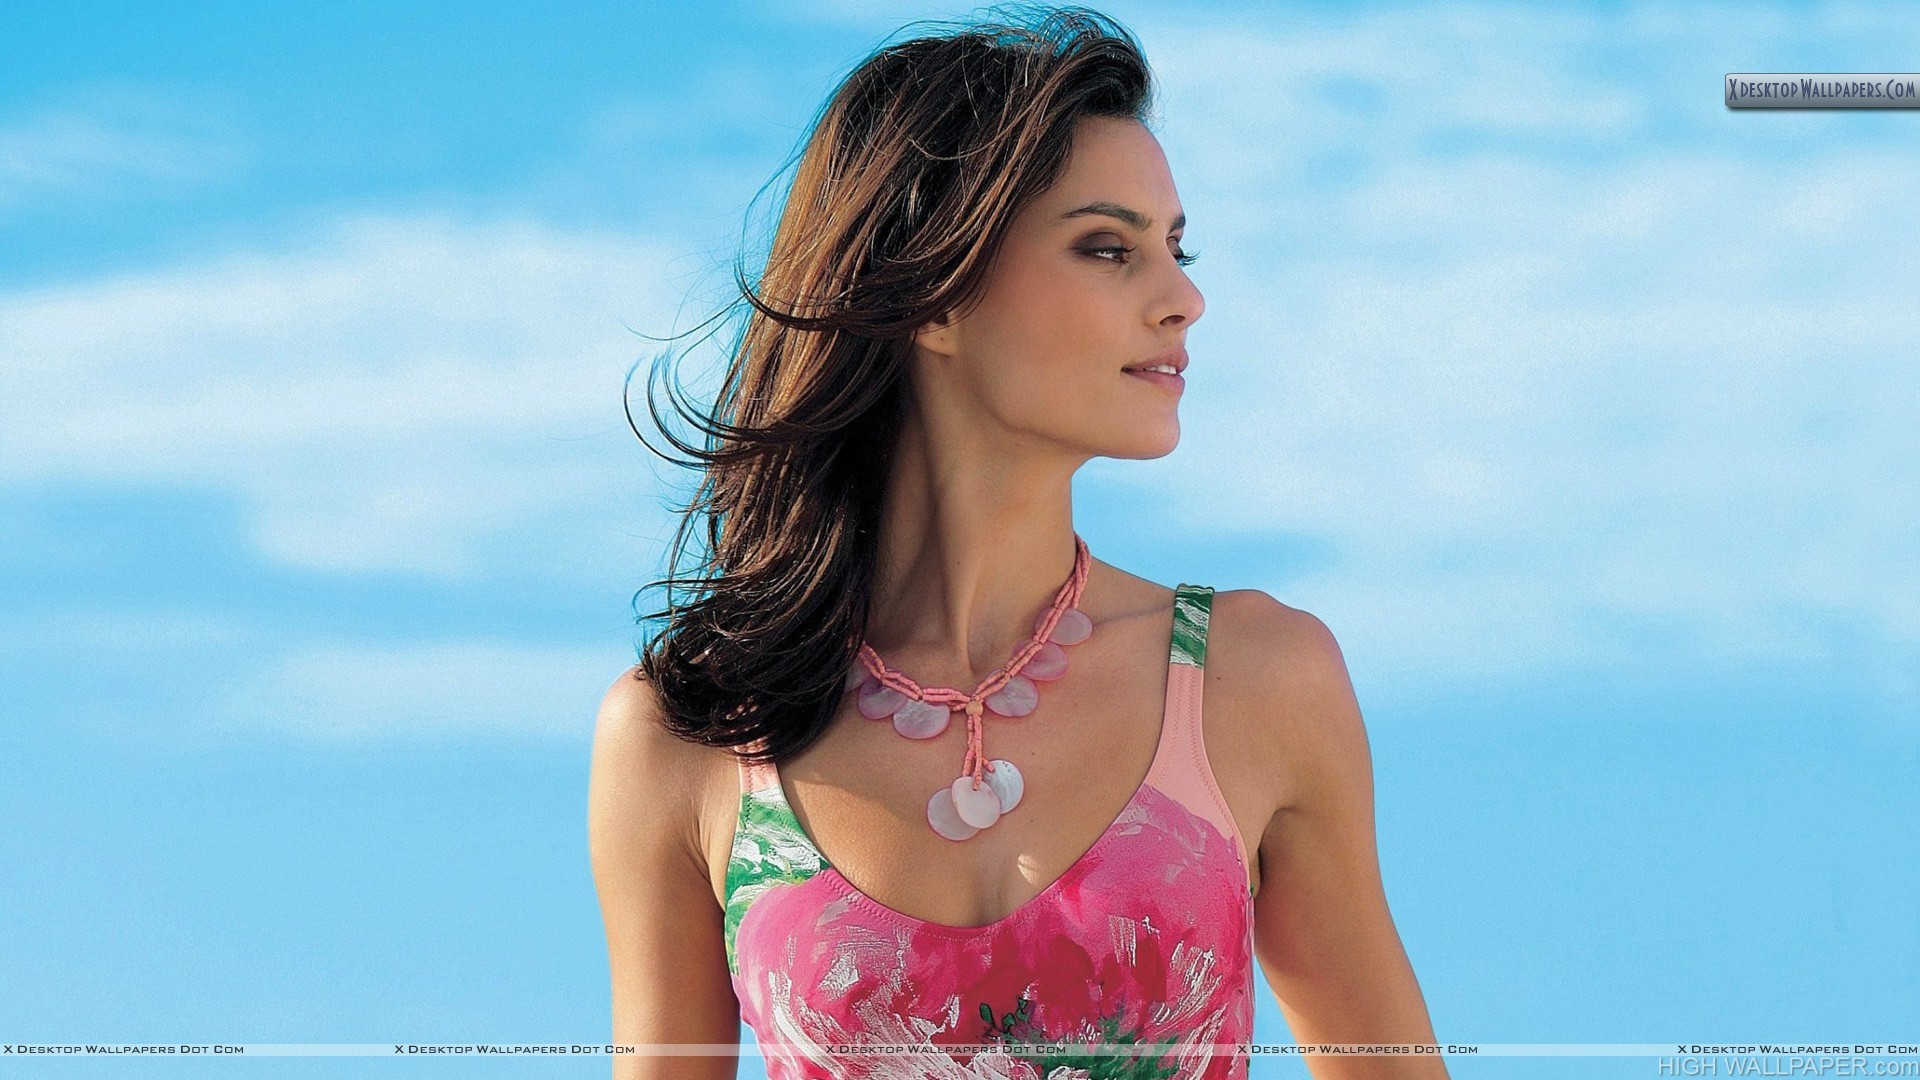 Catrinel Menghia Side Smiling Face In Pink Dress